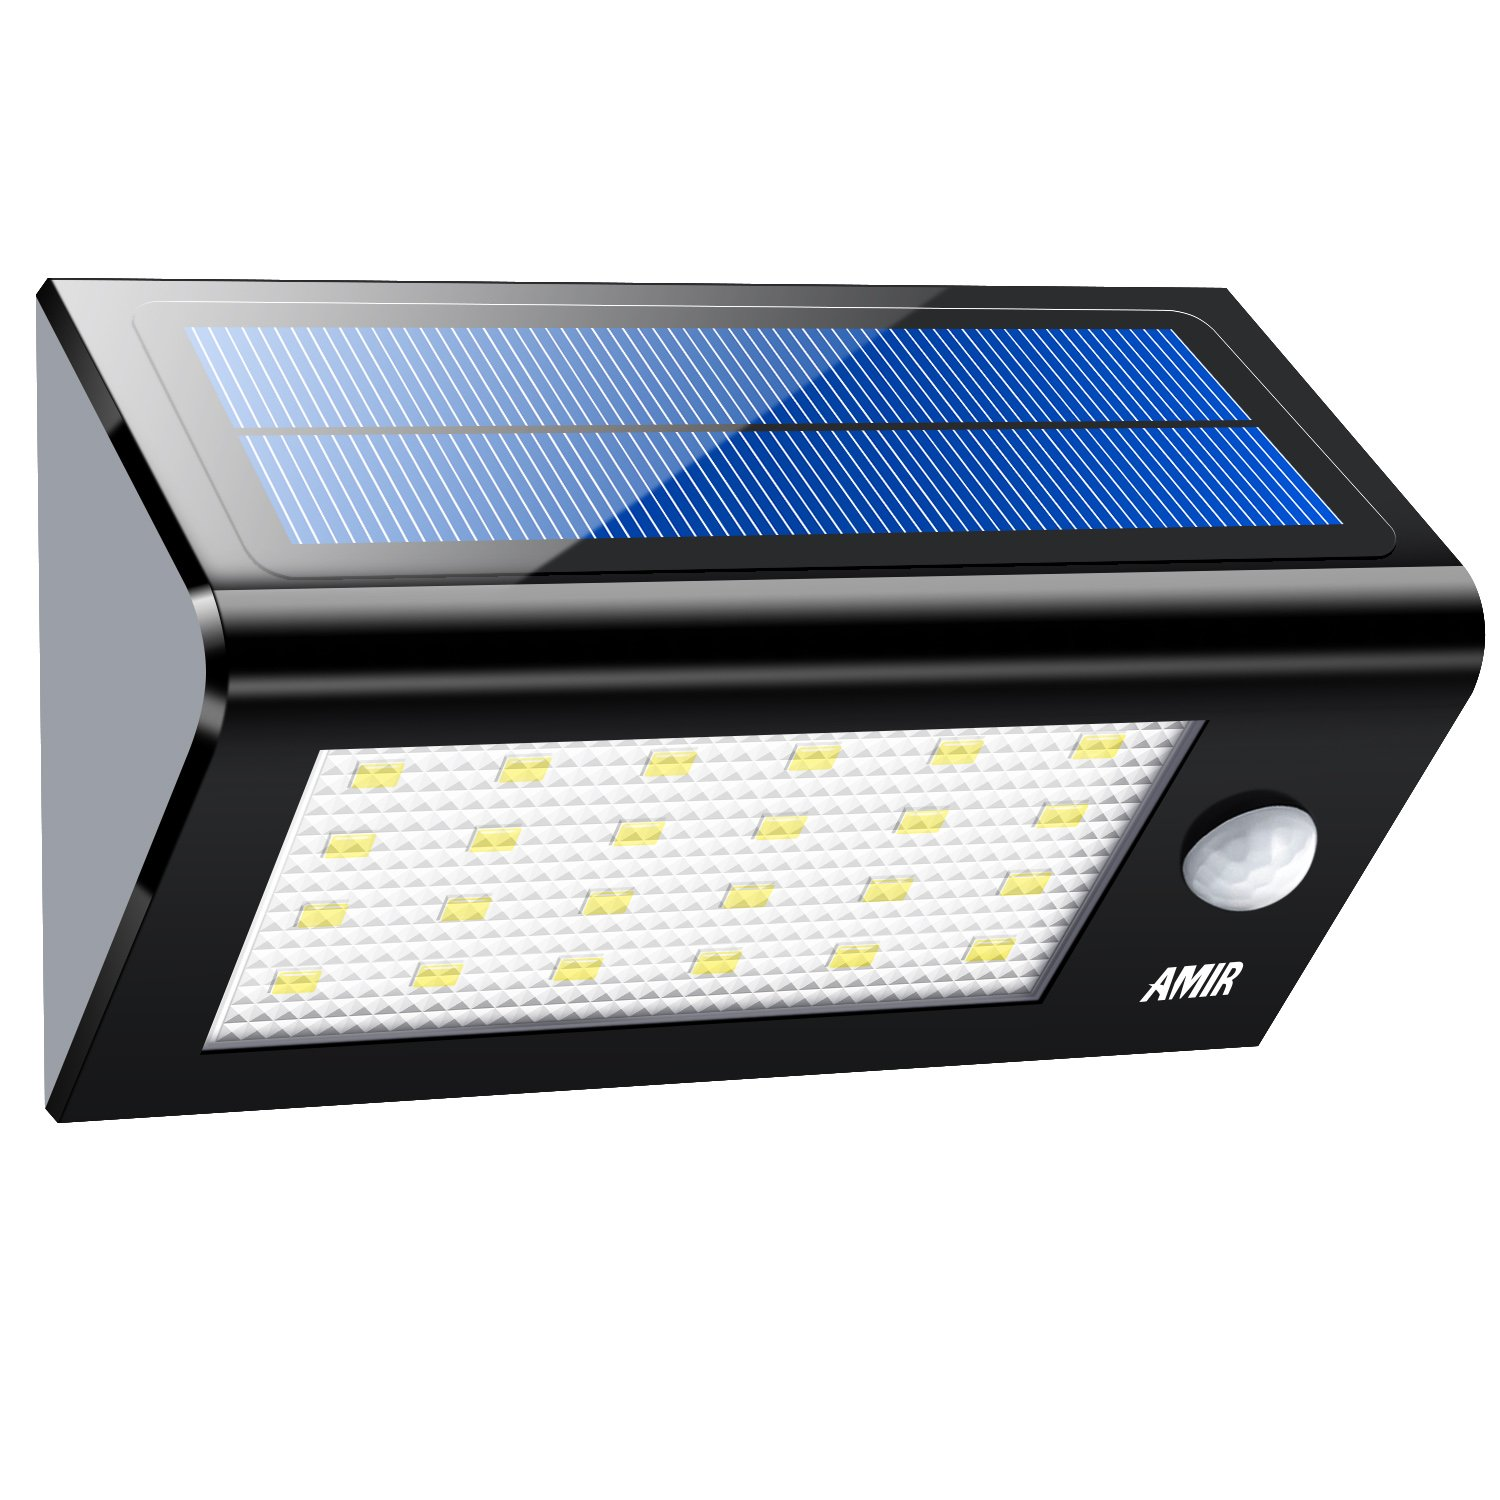 AMIR Solar Lights Outdoor, 24 LED Motion Sensor Wall Lights, 4 Modes Wireless Garden Security Light, Waterproof Solar Step Light for Patio, Deck, Yard, Garden, Garage, Driveway, Pathway, Stairs, Pool by AMIR